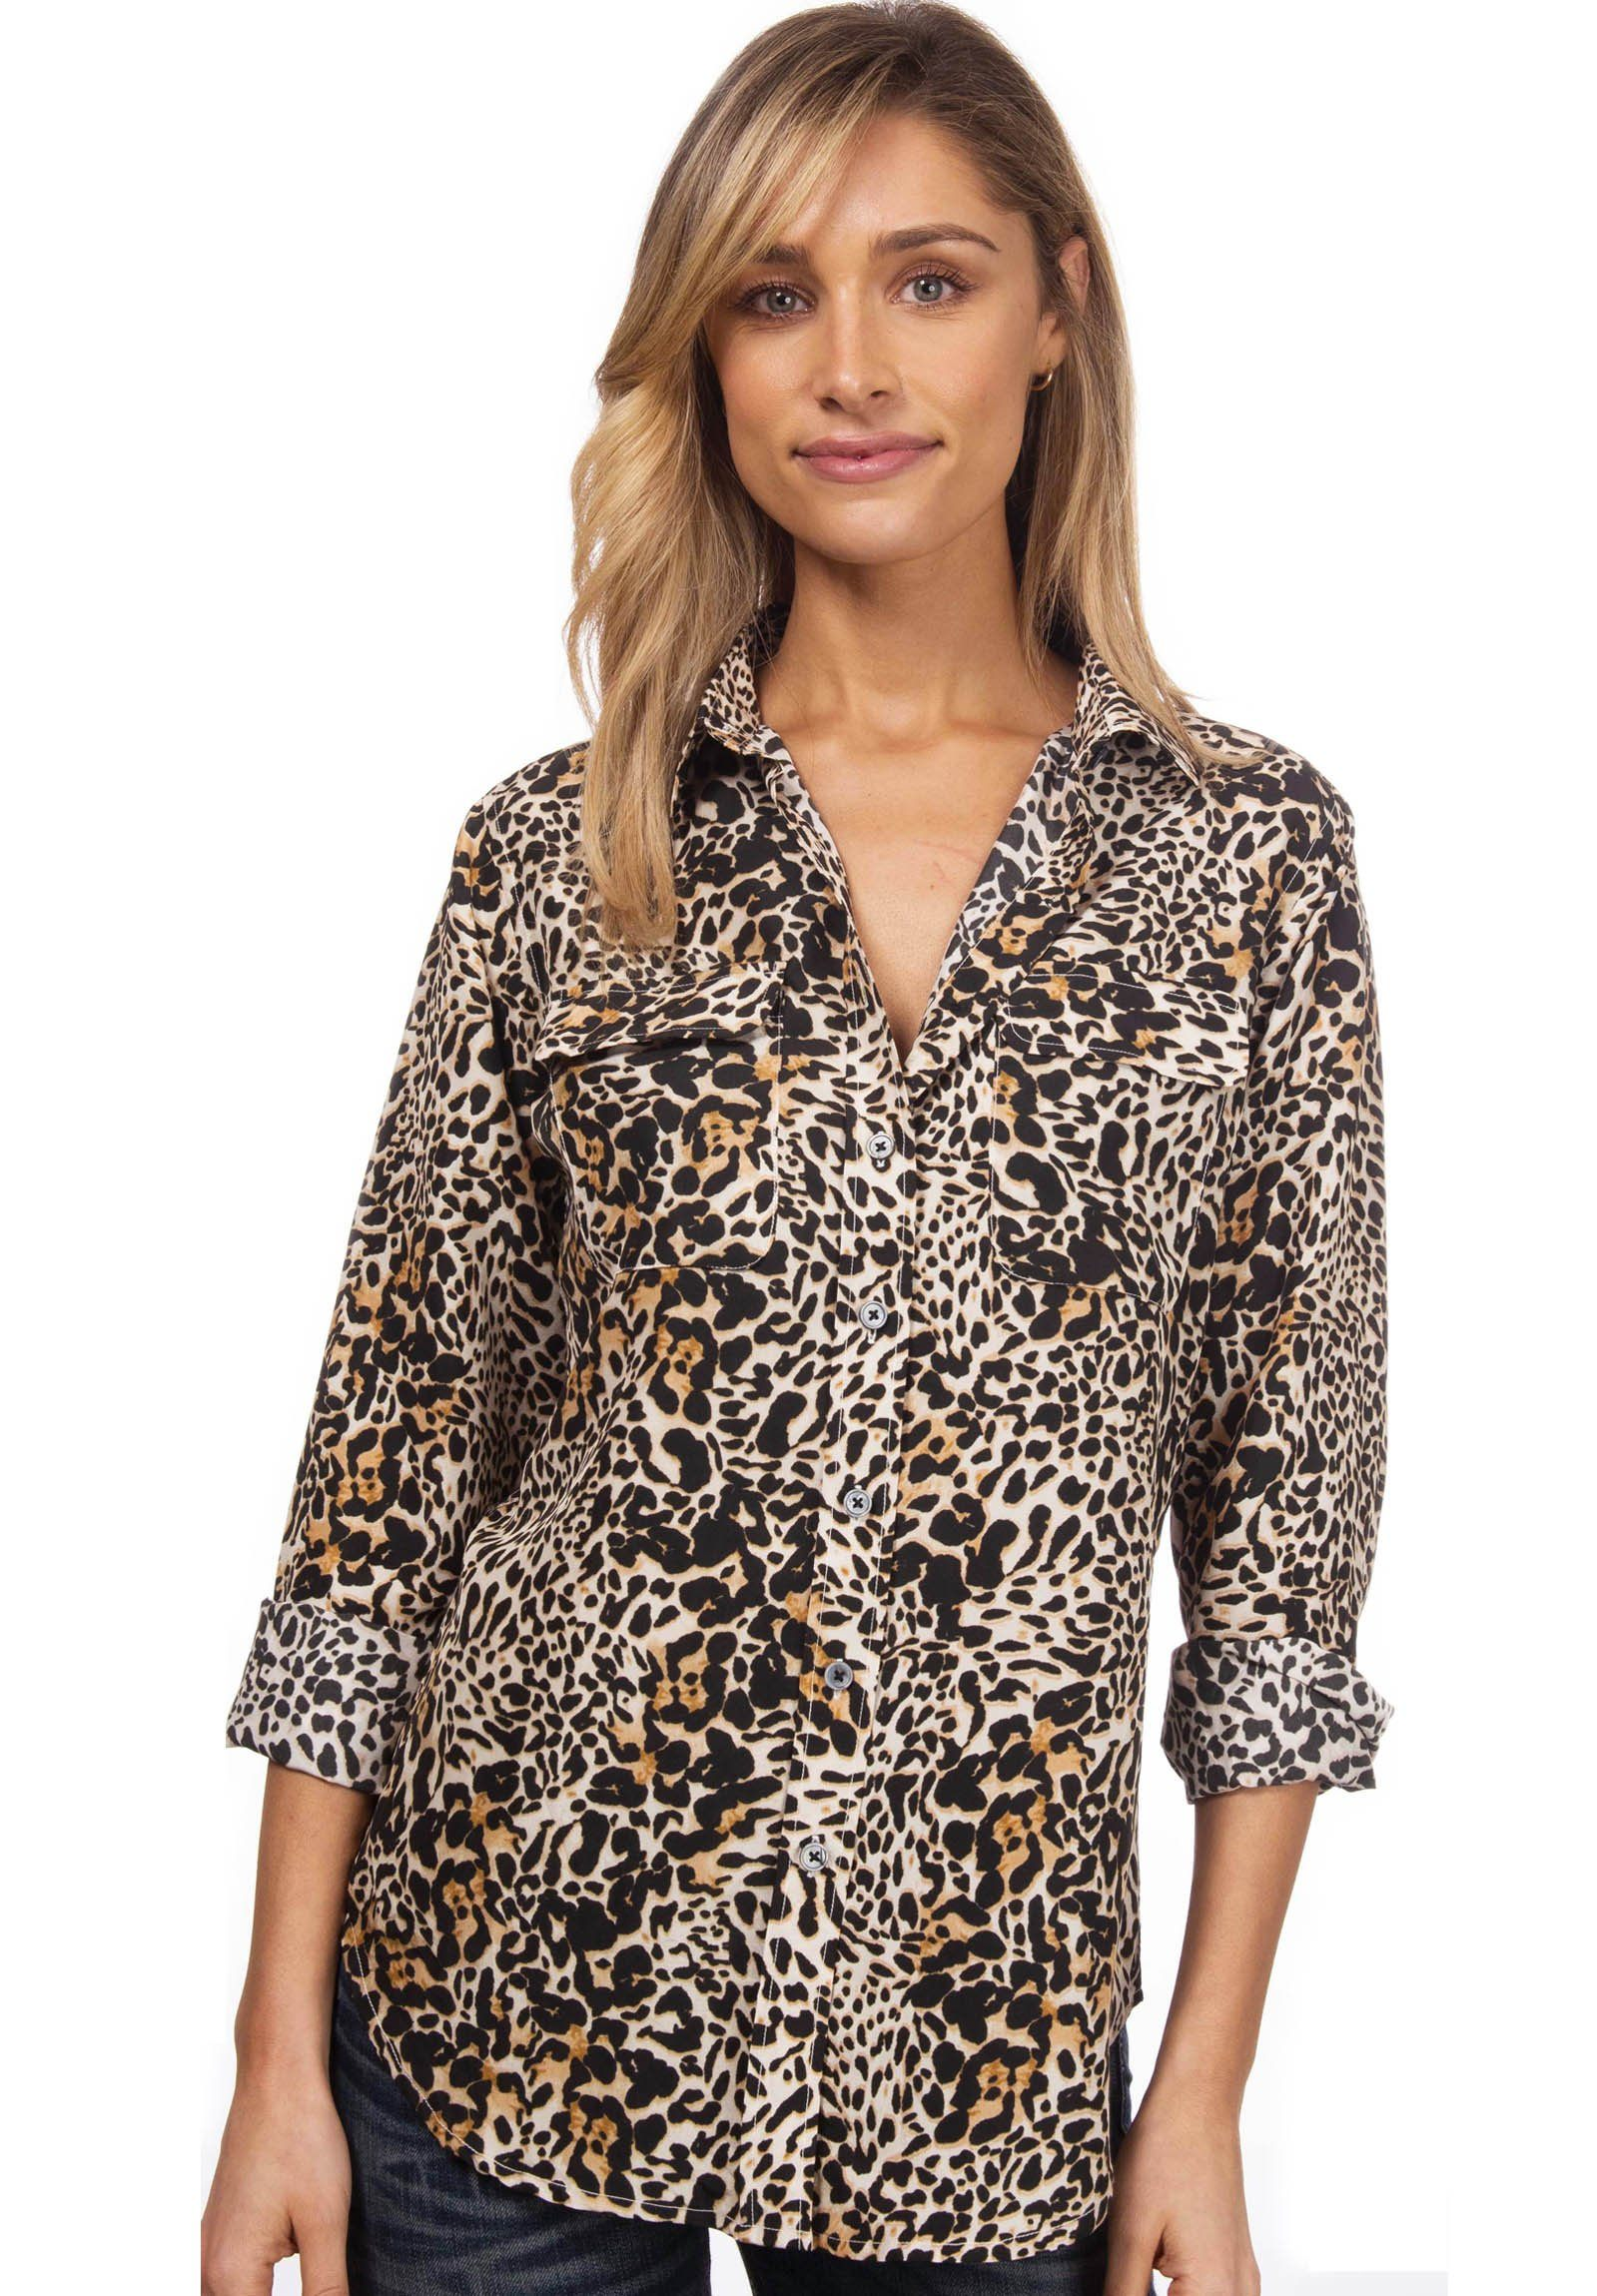 Lete Silk Leopard, Sand-Washed Shirt with pockets